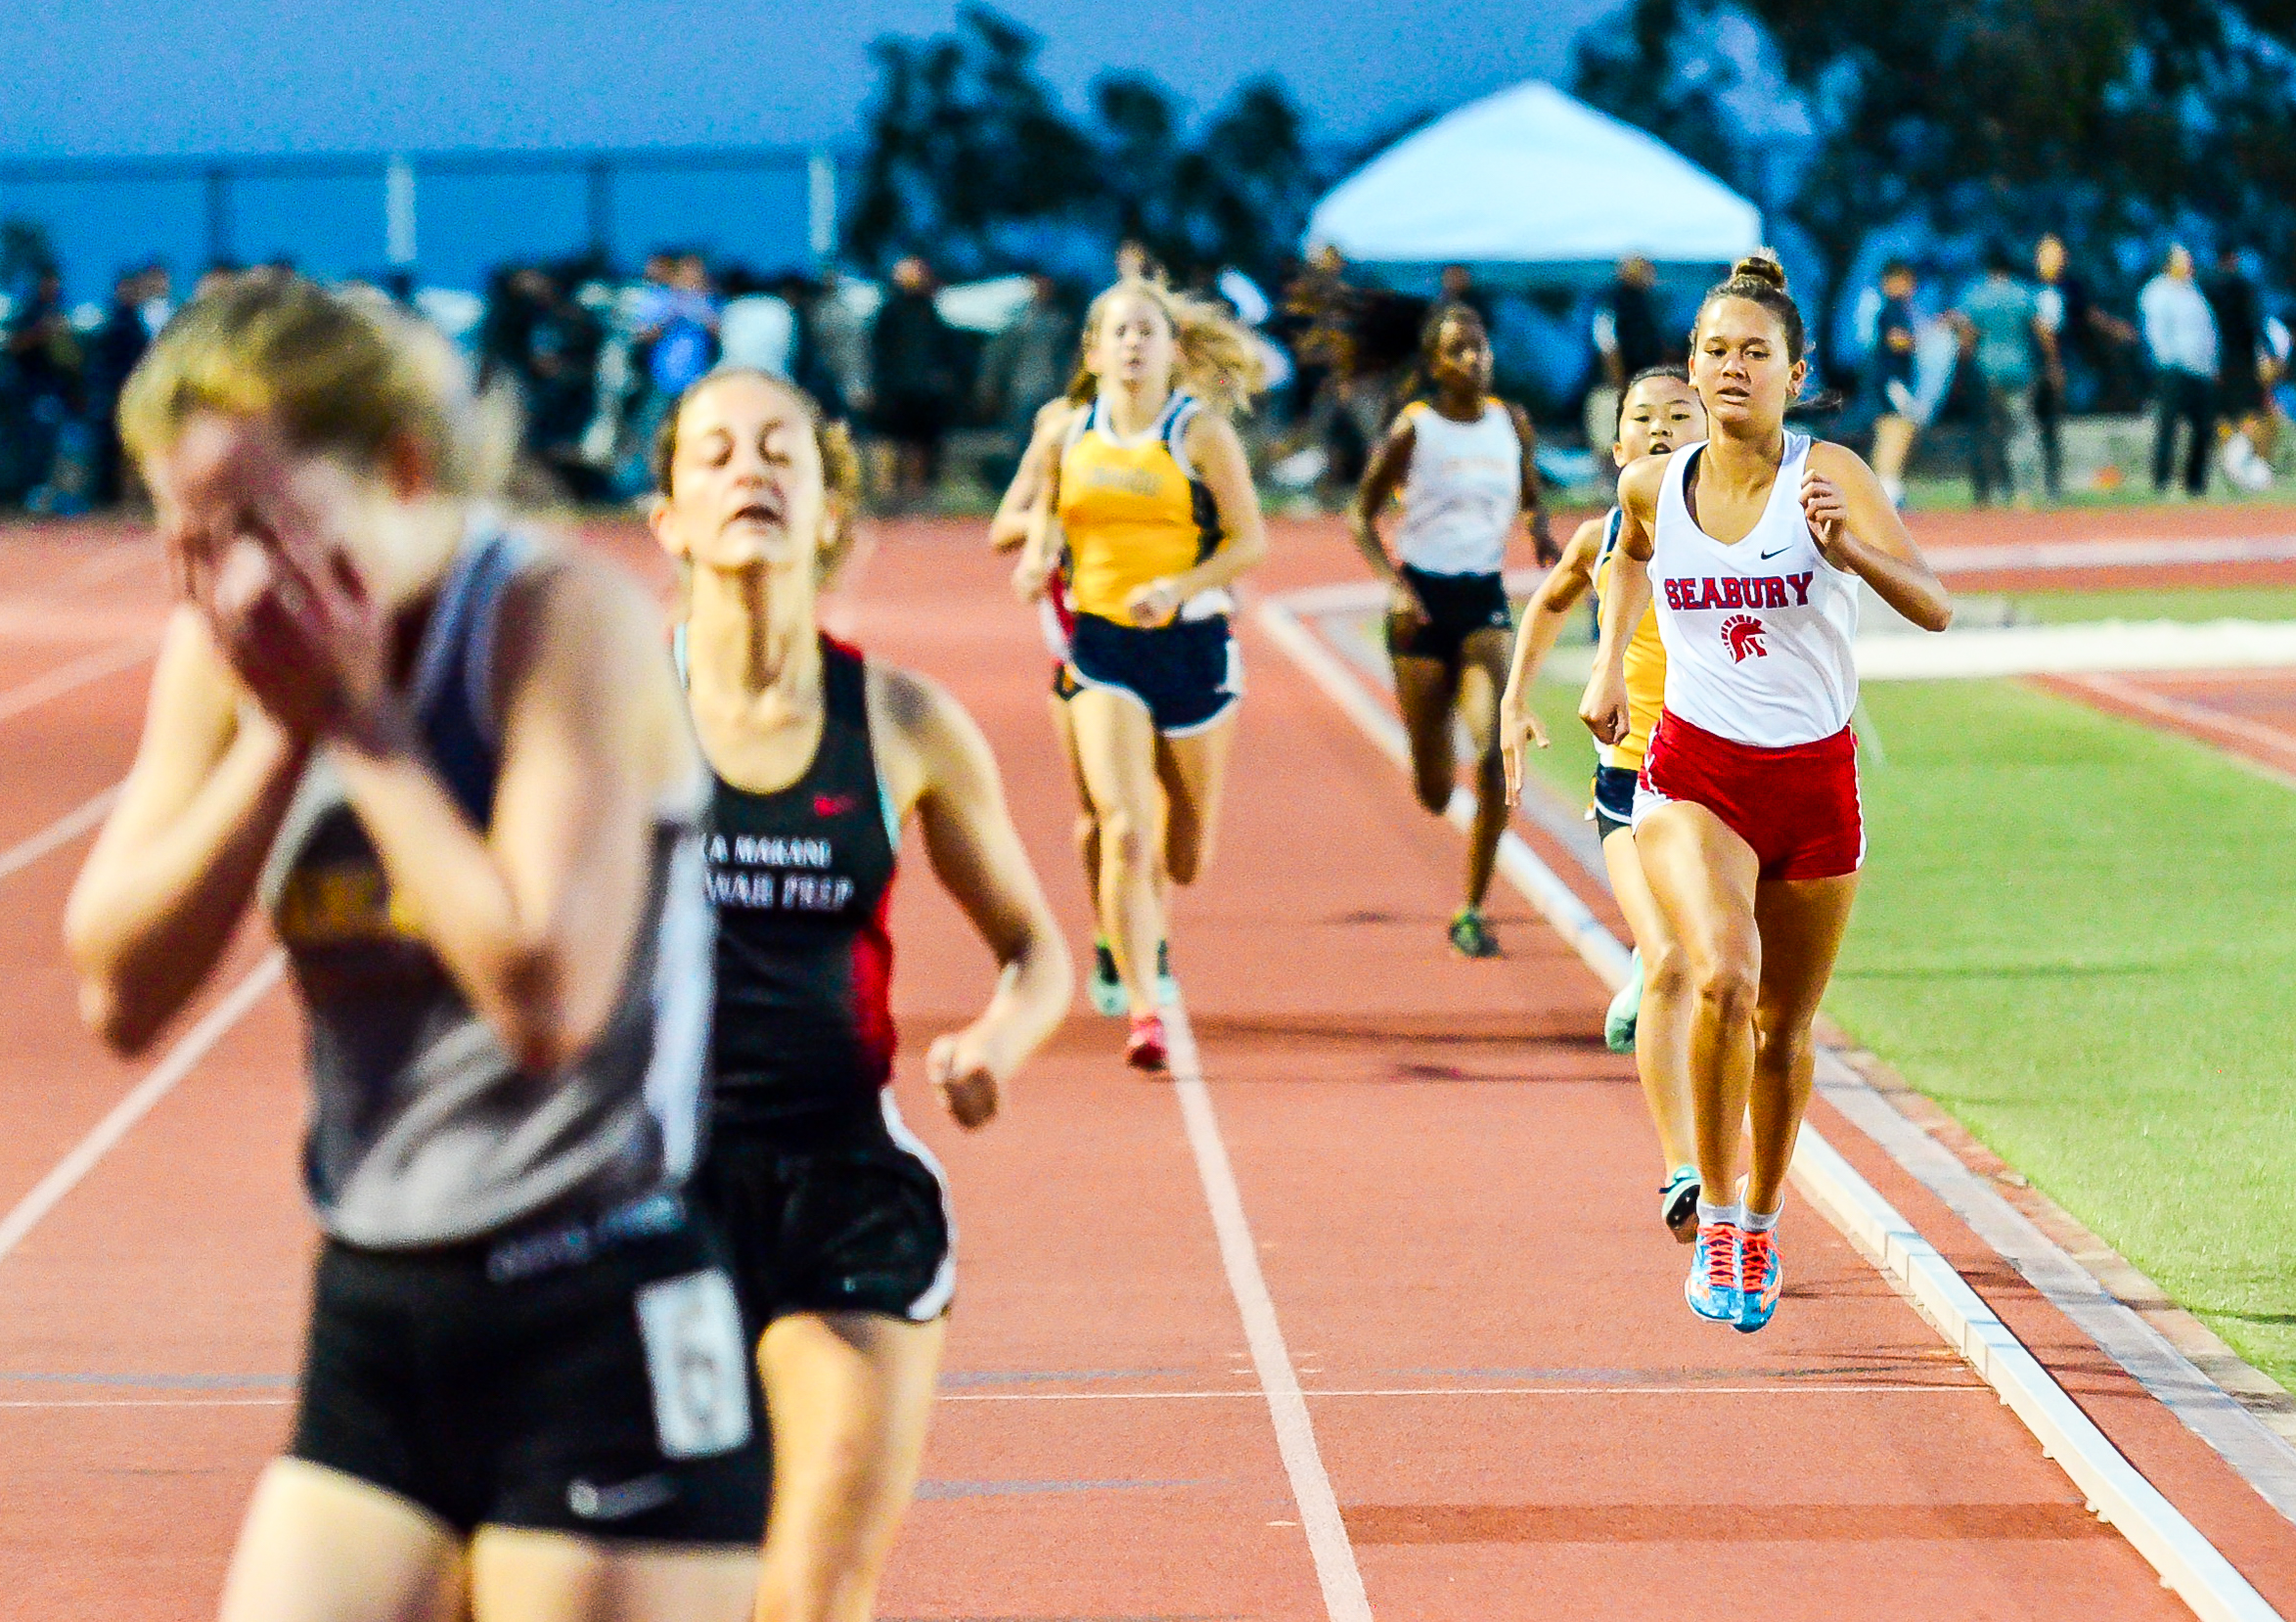 Sacred Hearts Academy's Phoebe Kirk wins the 800 as Seabury Hall's Ava Shipman was third in 2:24.46. Photo by Rodney S. Yap.